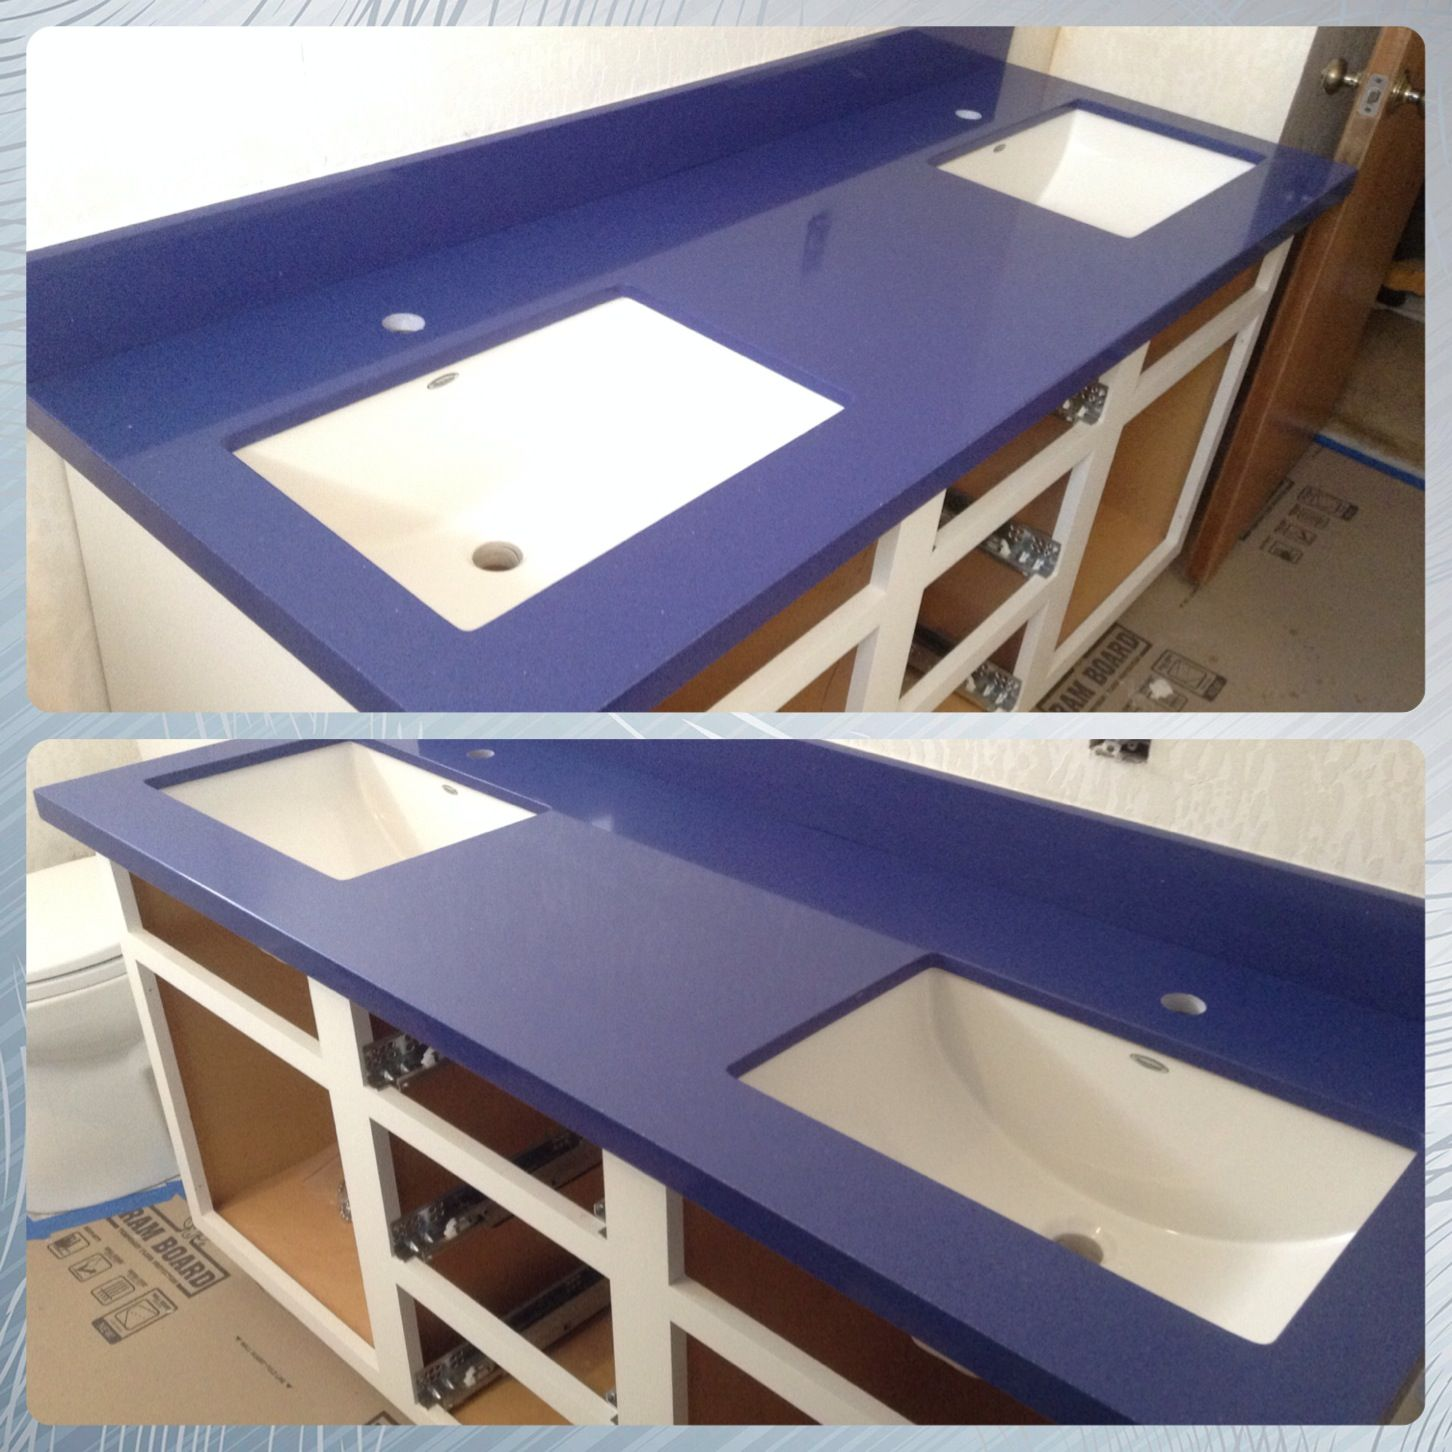 New Bala Blue Quartz Counter Top By Cambria Installed By Stone Etc Inc